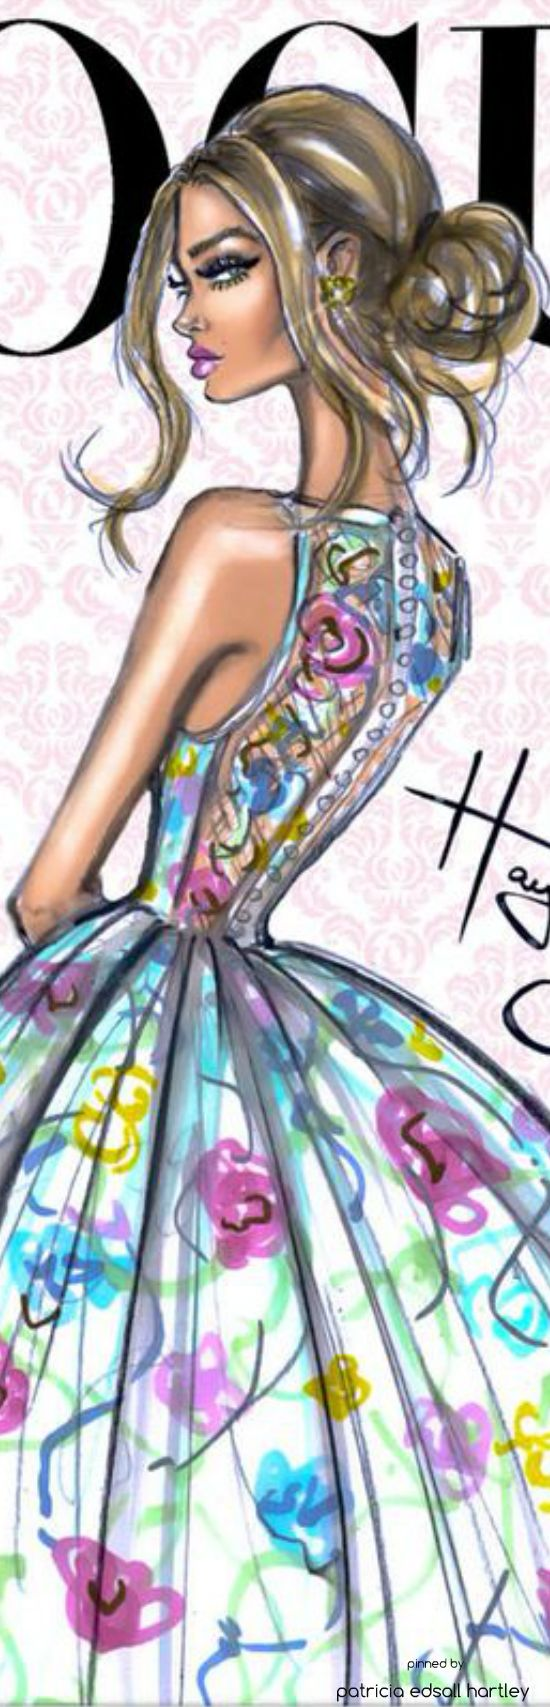 'Floral Fantasy' by Hayden Williams